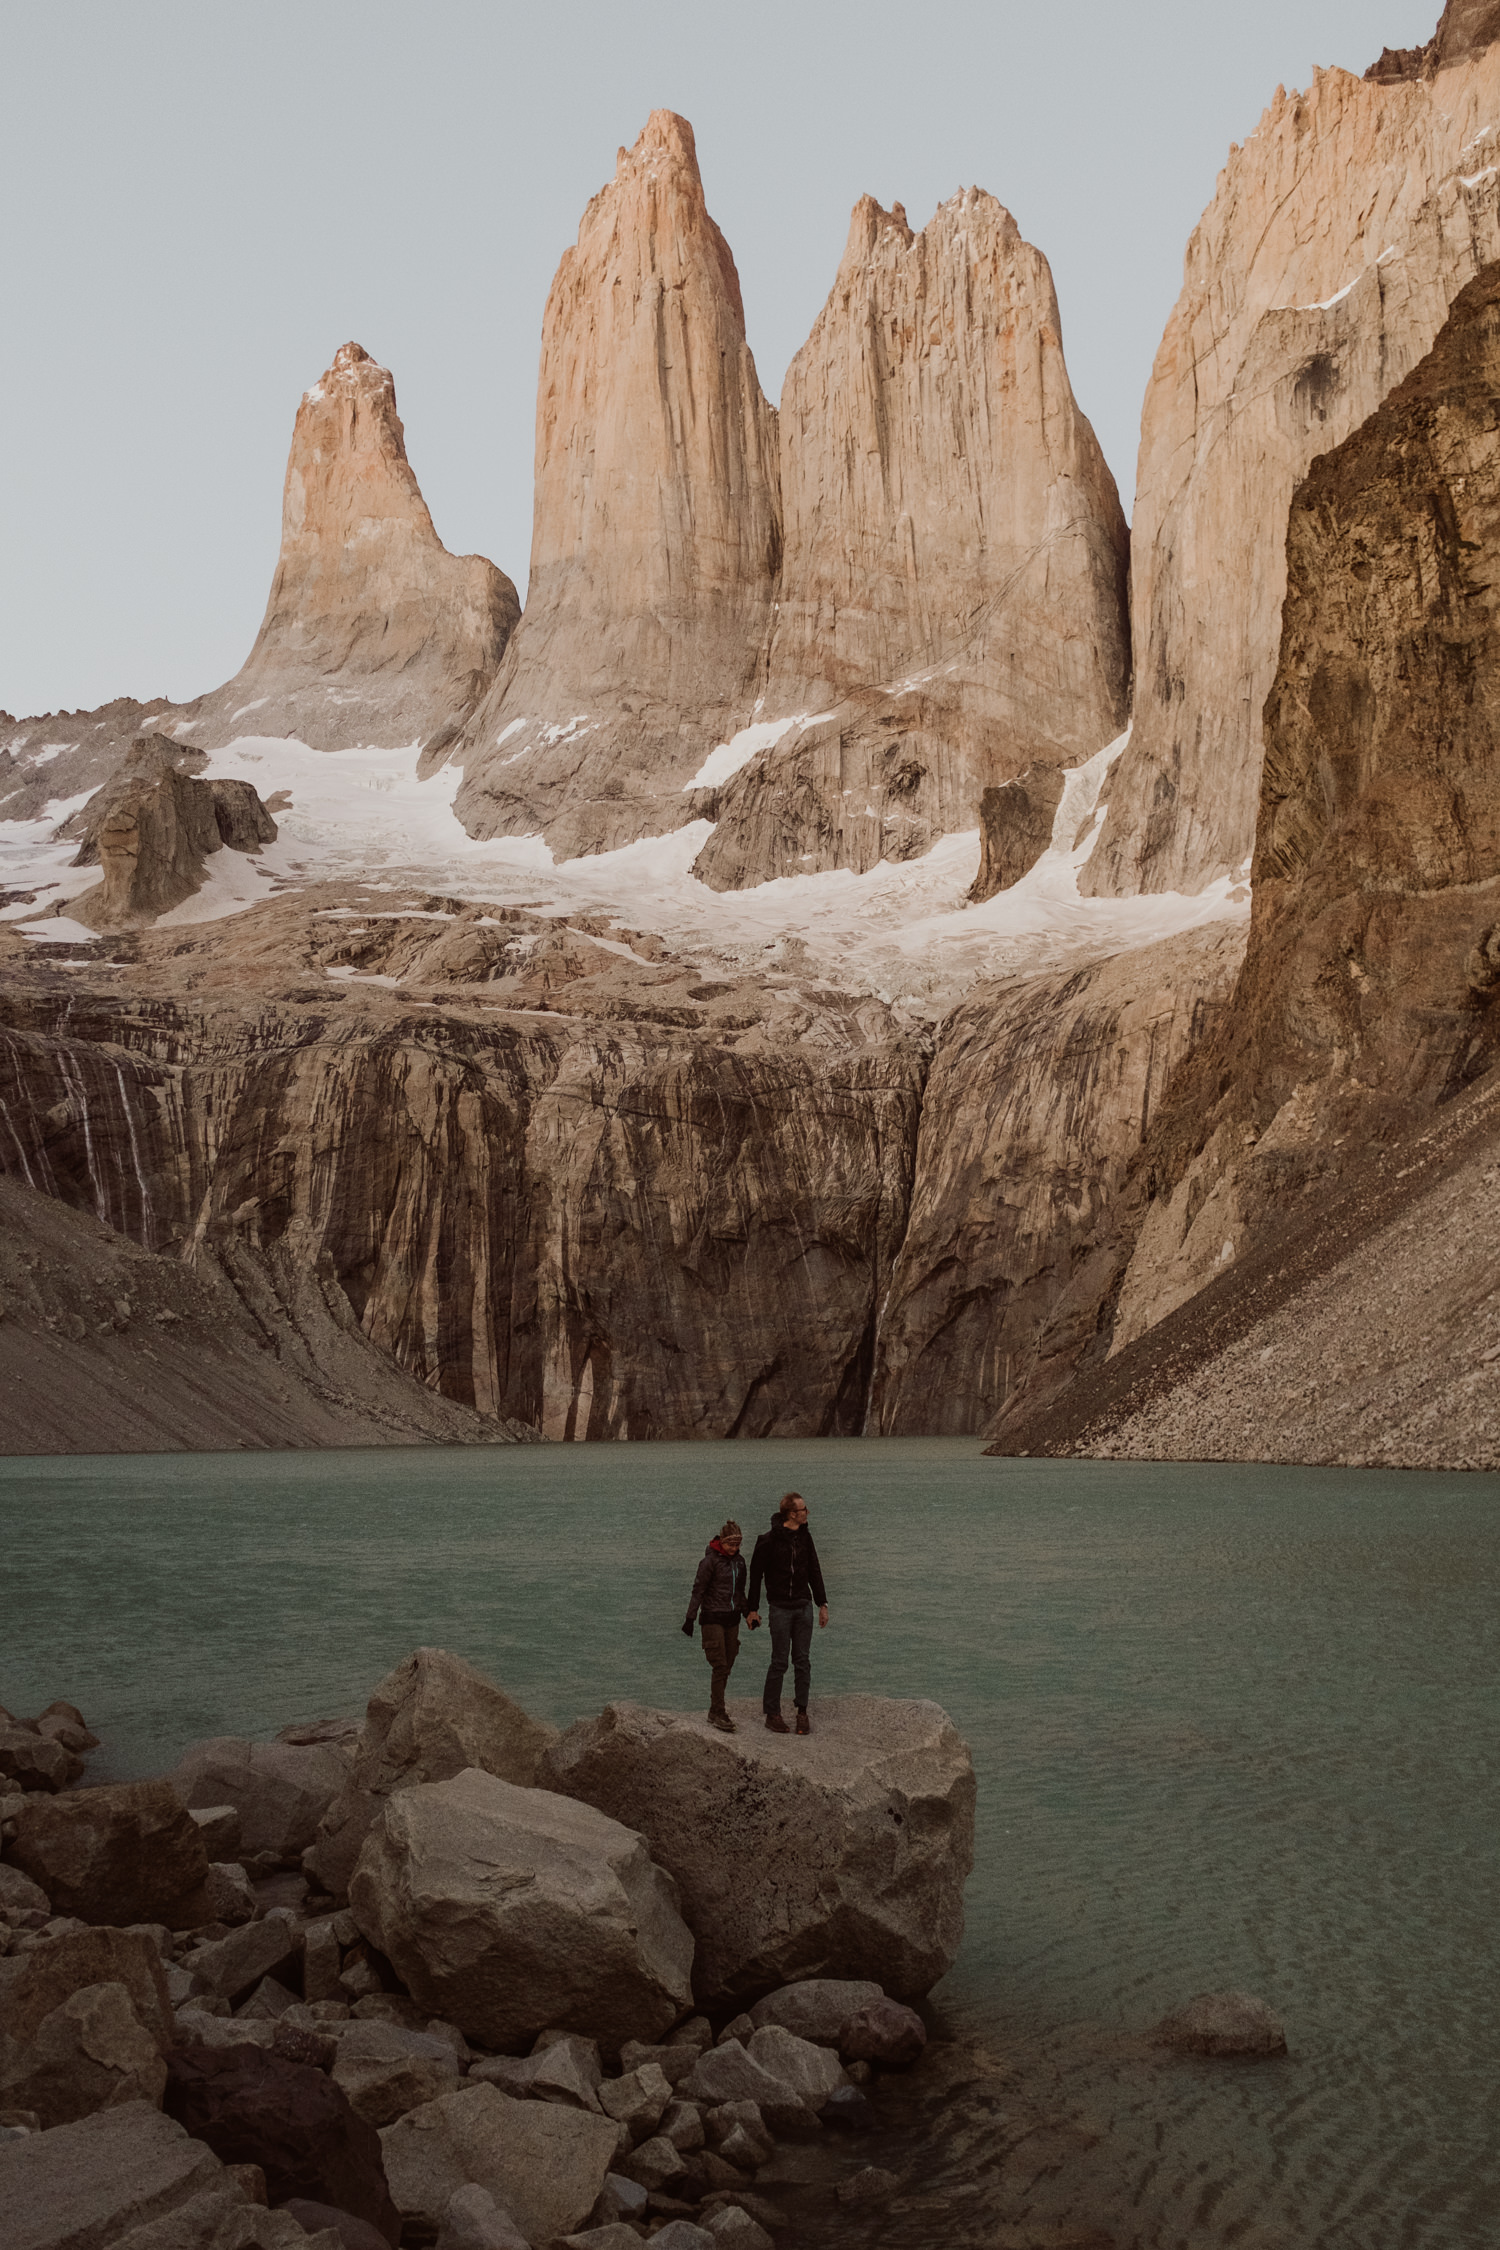 patagonia-adventure-photographer-91.jpg